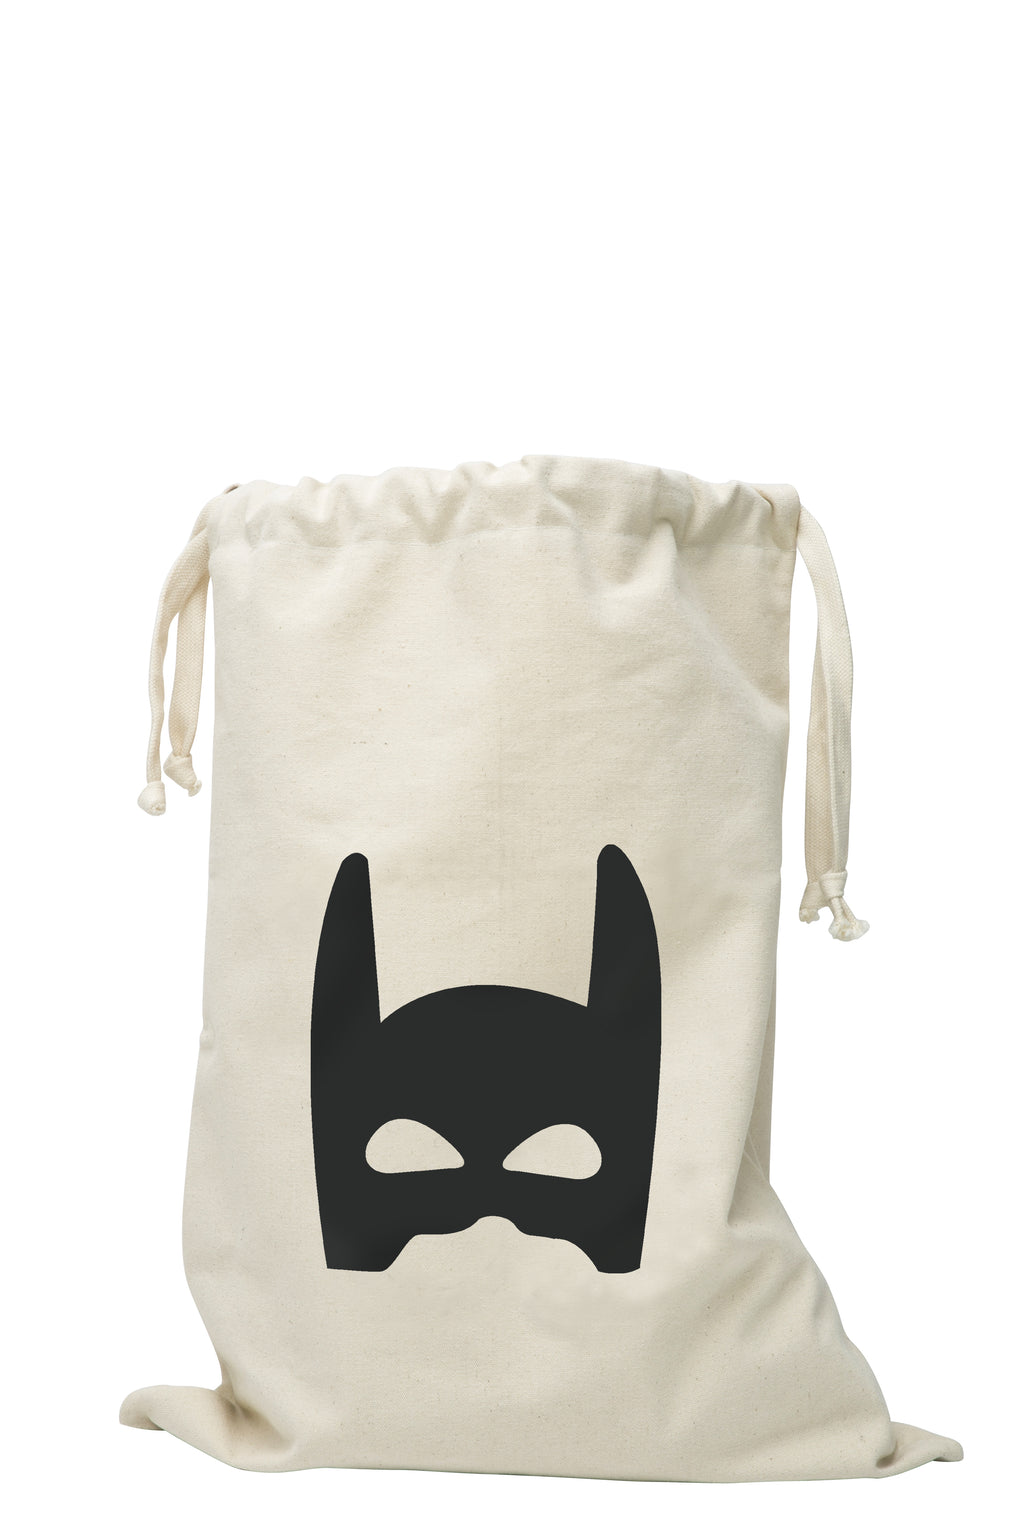 Superhero storage bag